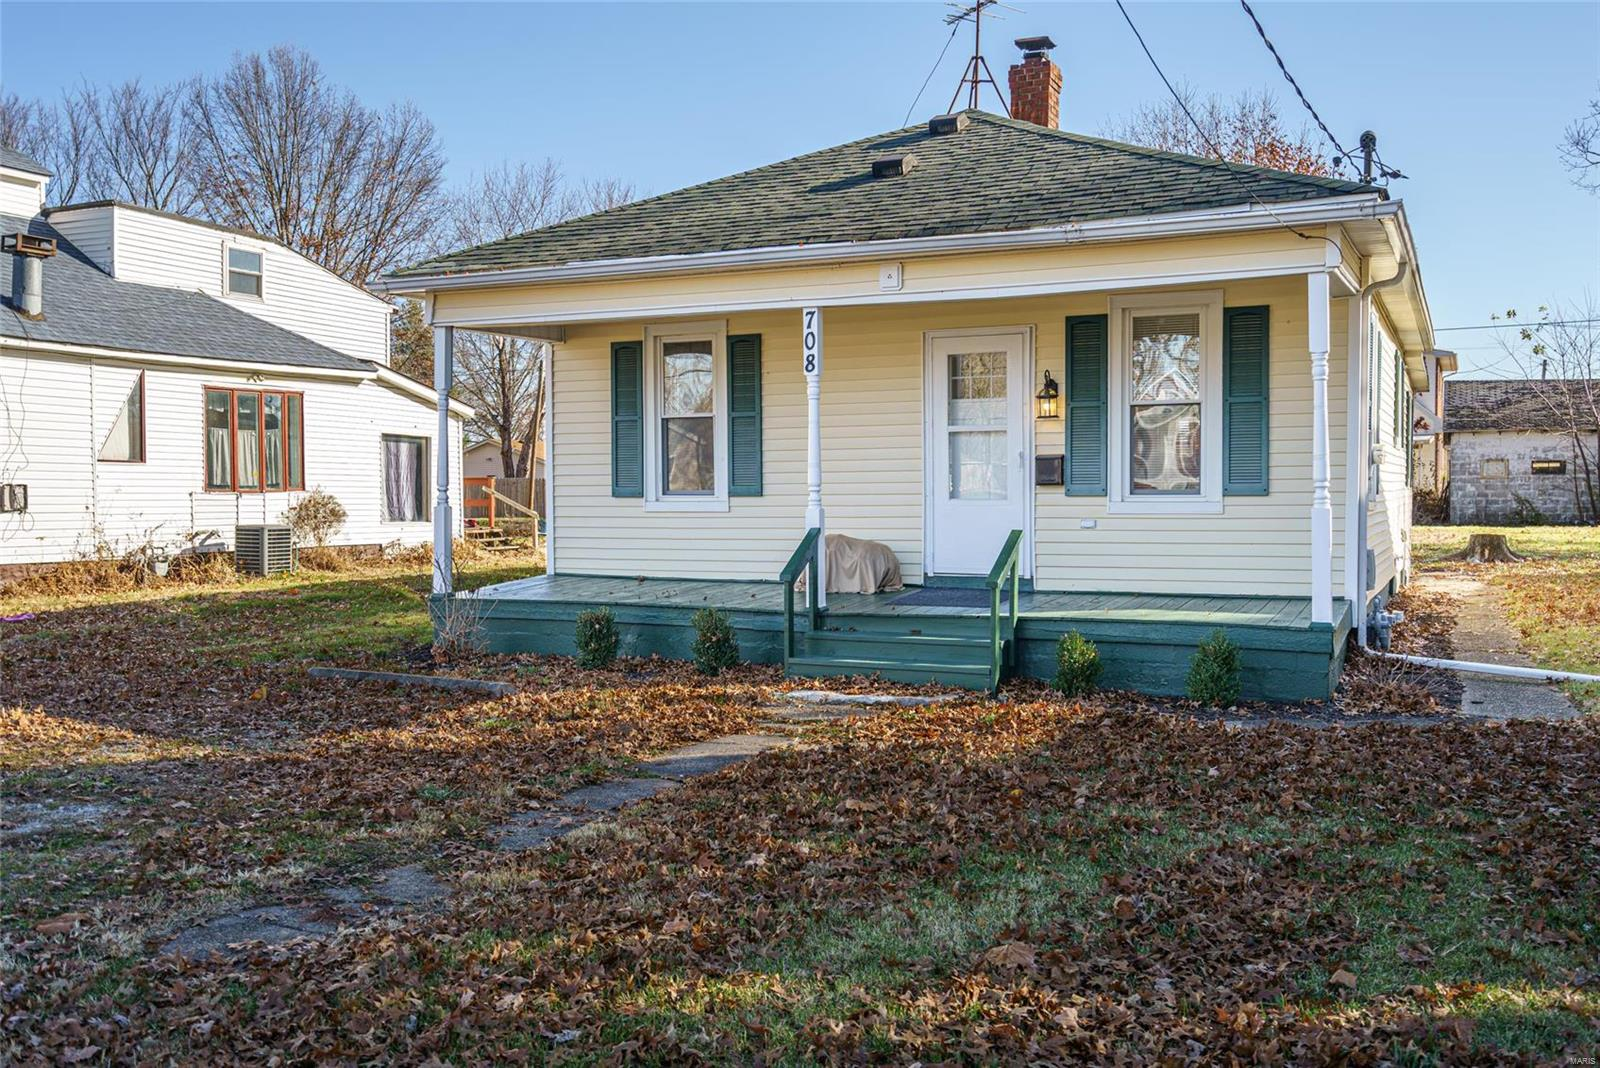 708 N 7th Street Property Photo - Benld, IL real estate listing